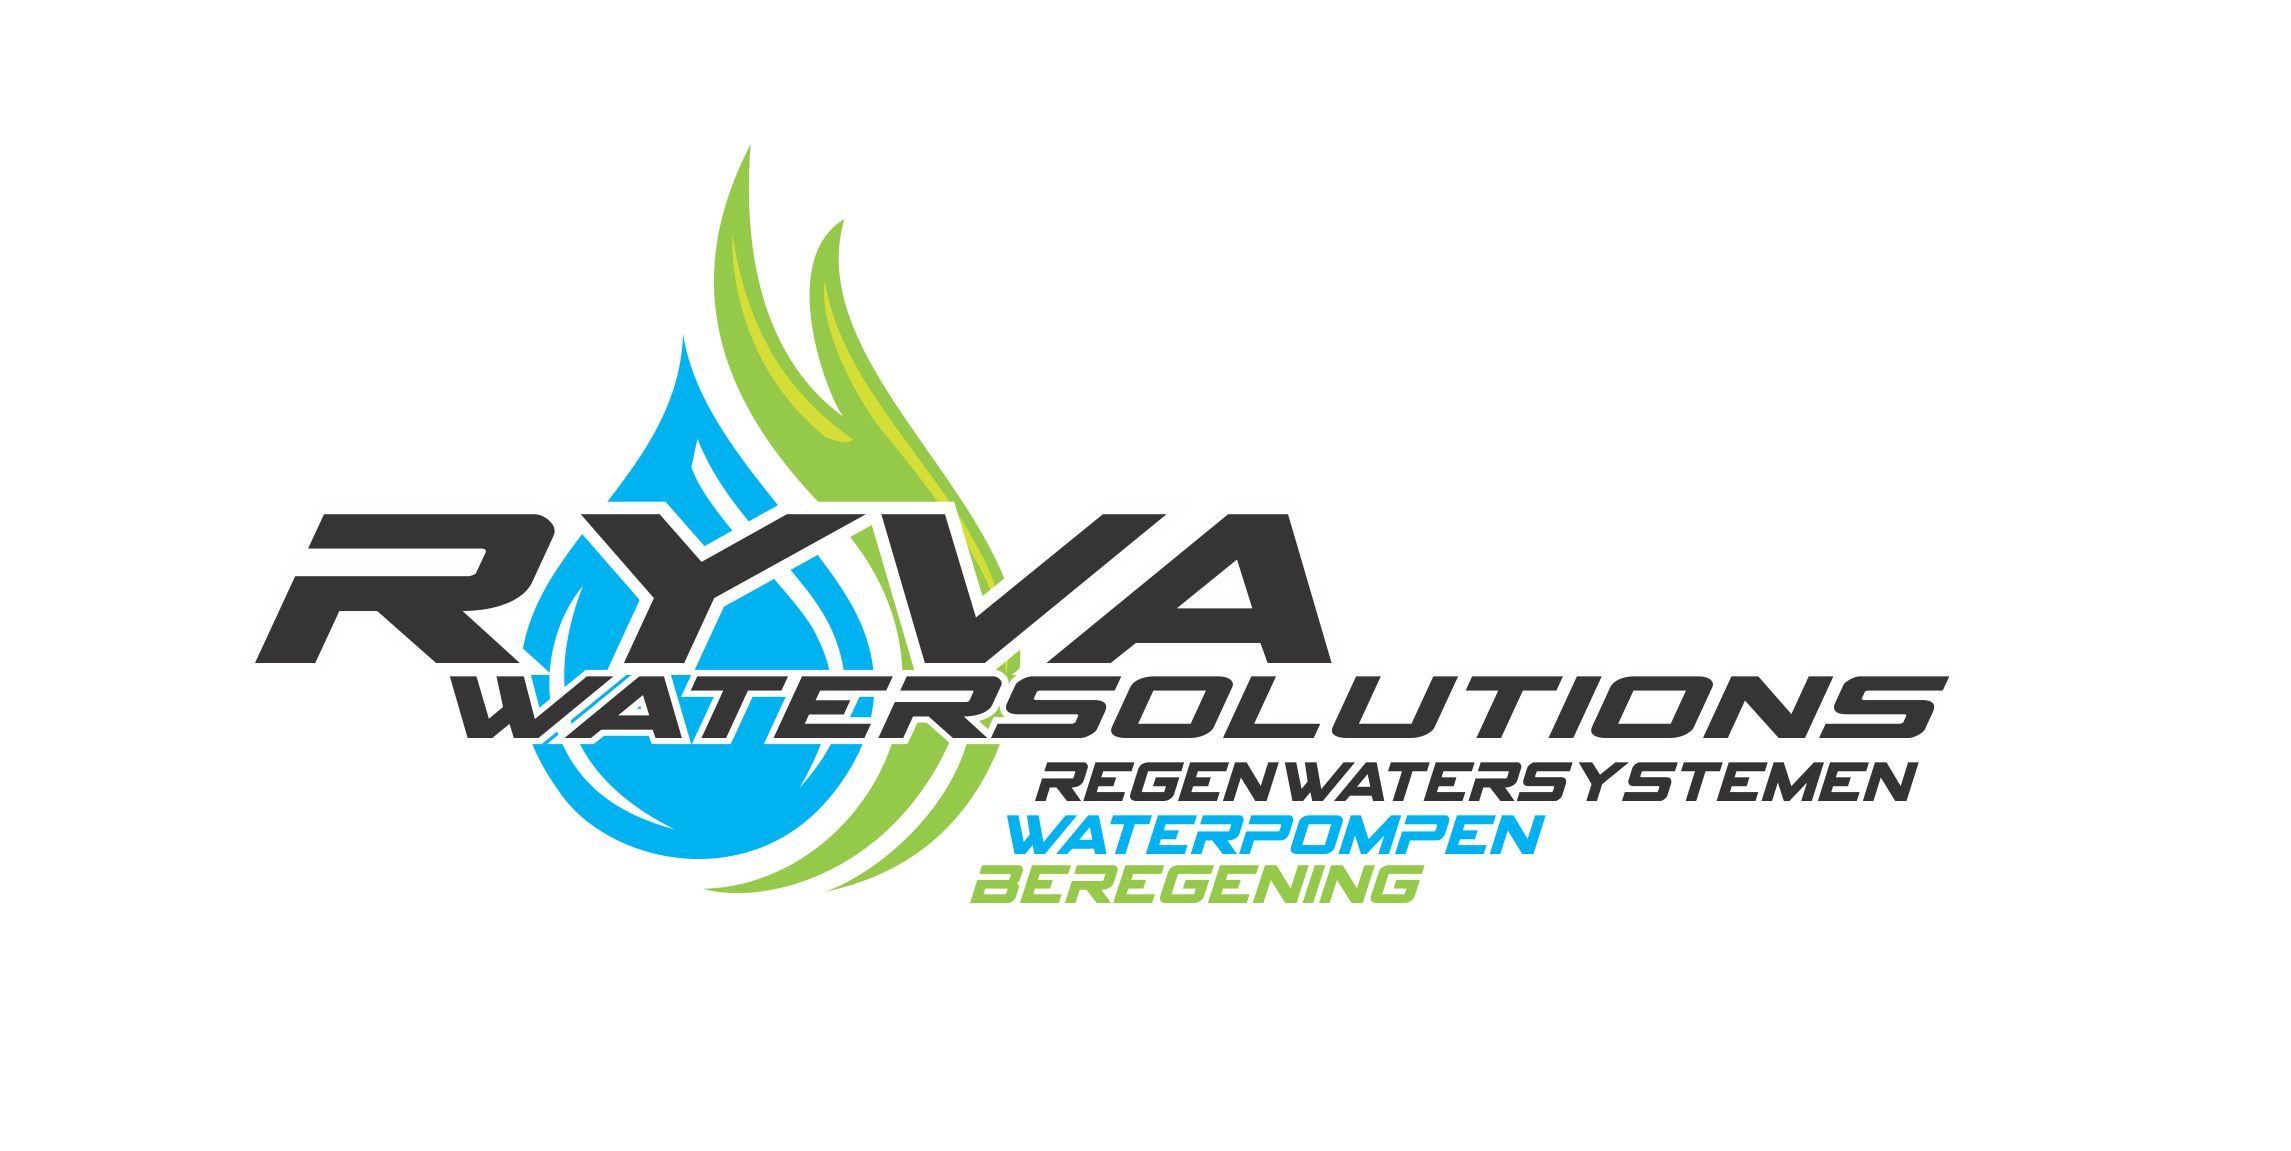 Ryva Watersolutions